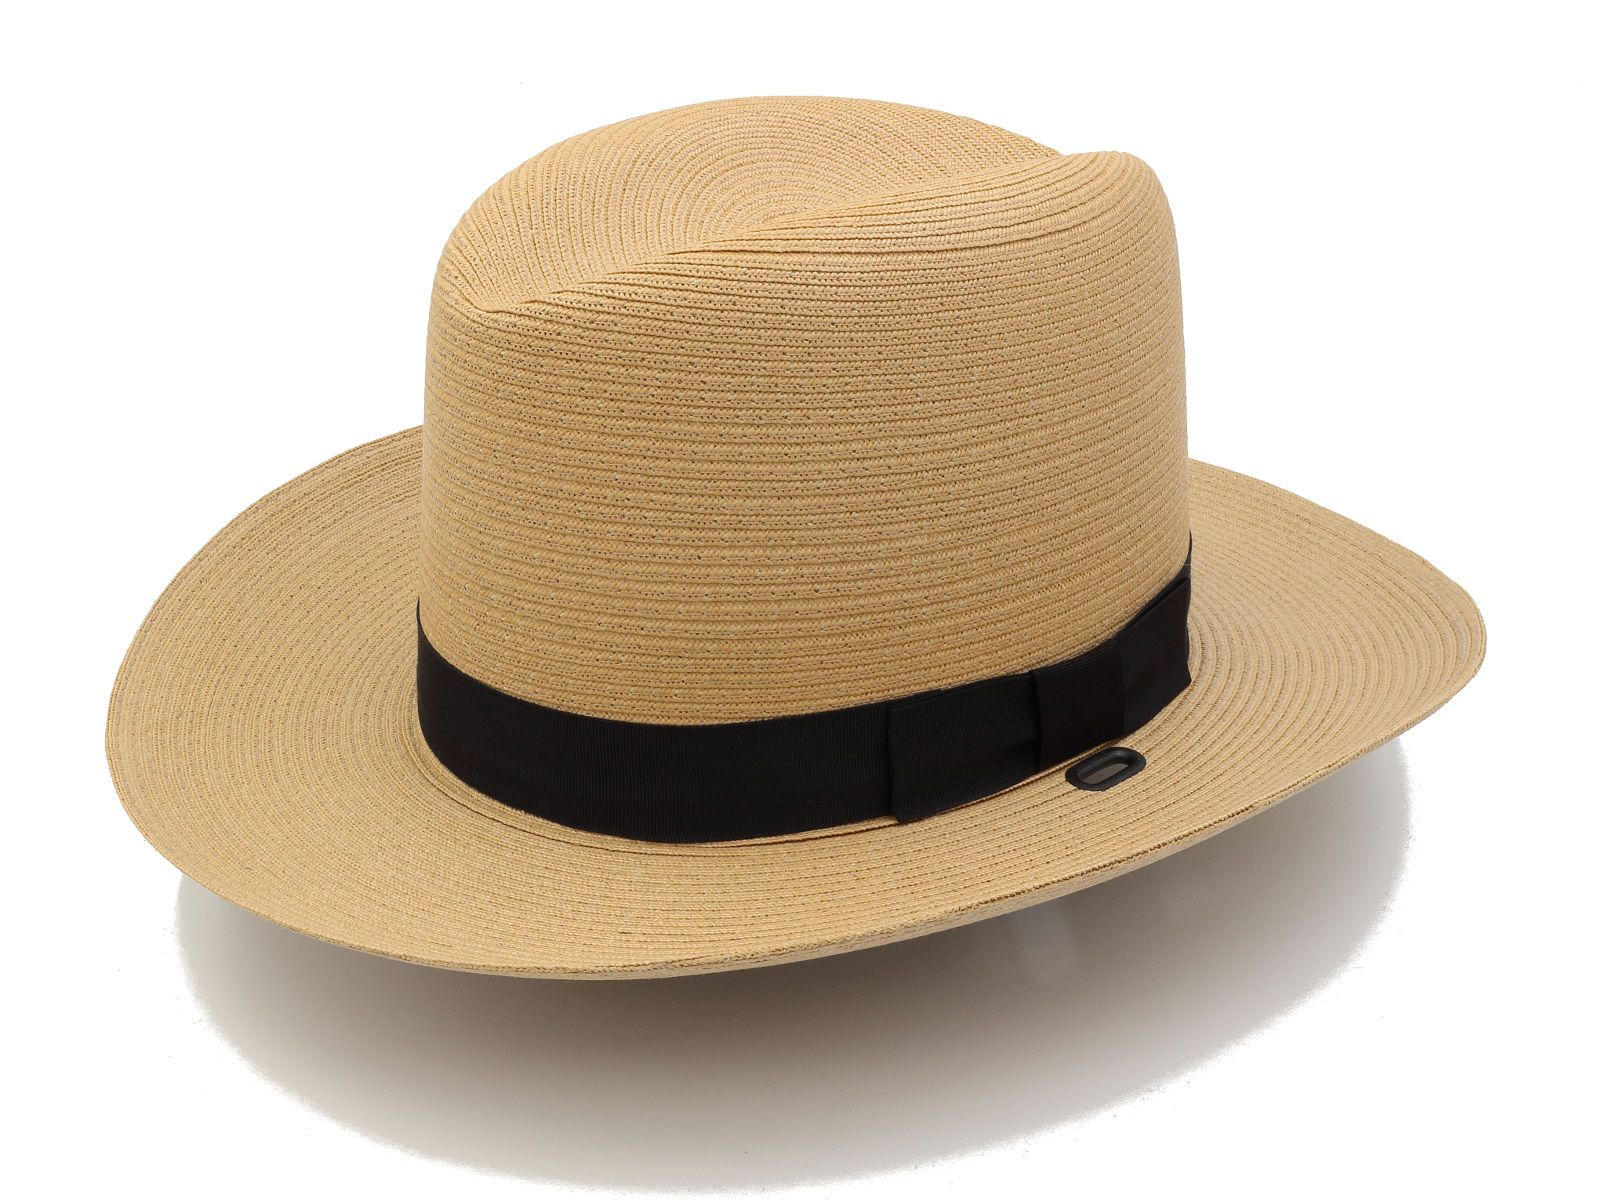 Sheriff Style Straw S42 Hat - Stratton Hats - Made in the USA 774326b3c3c